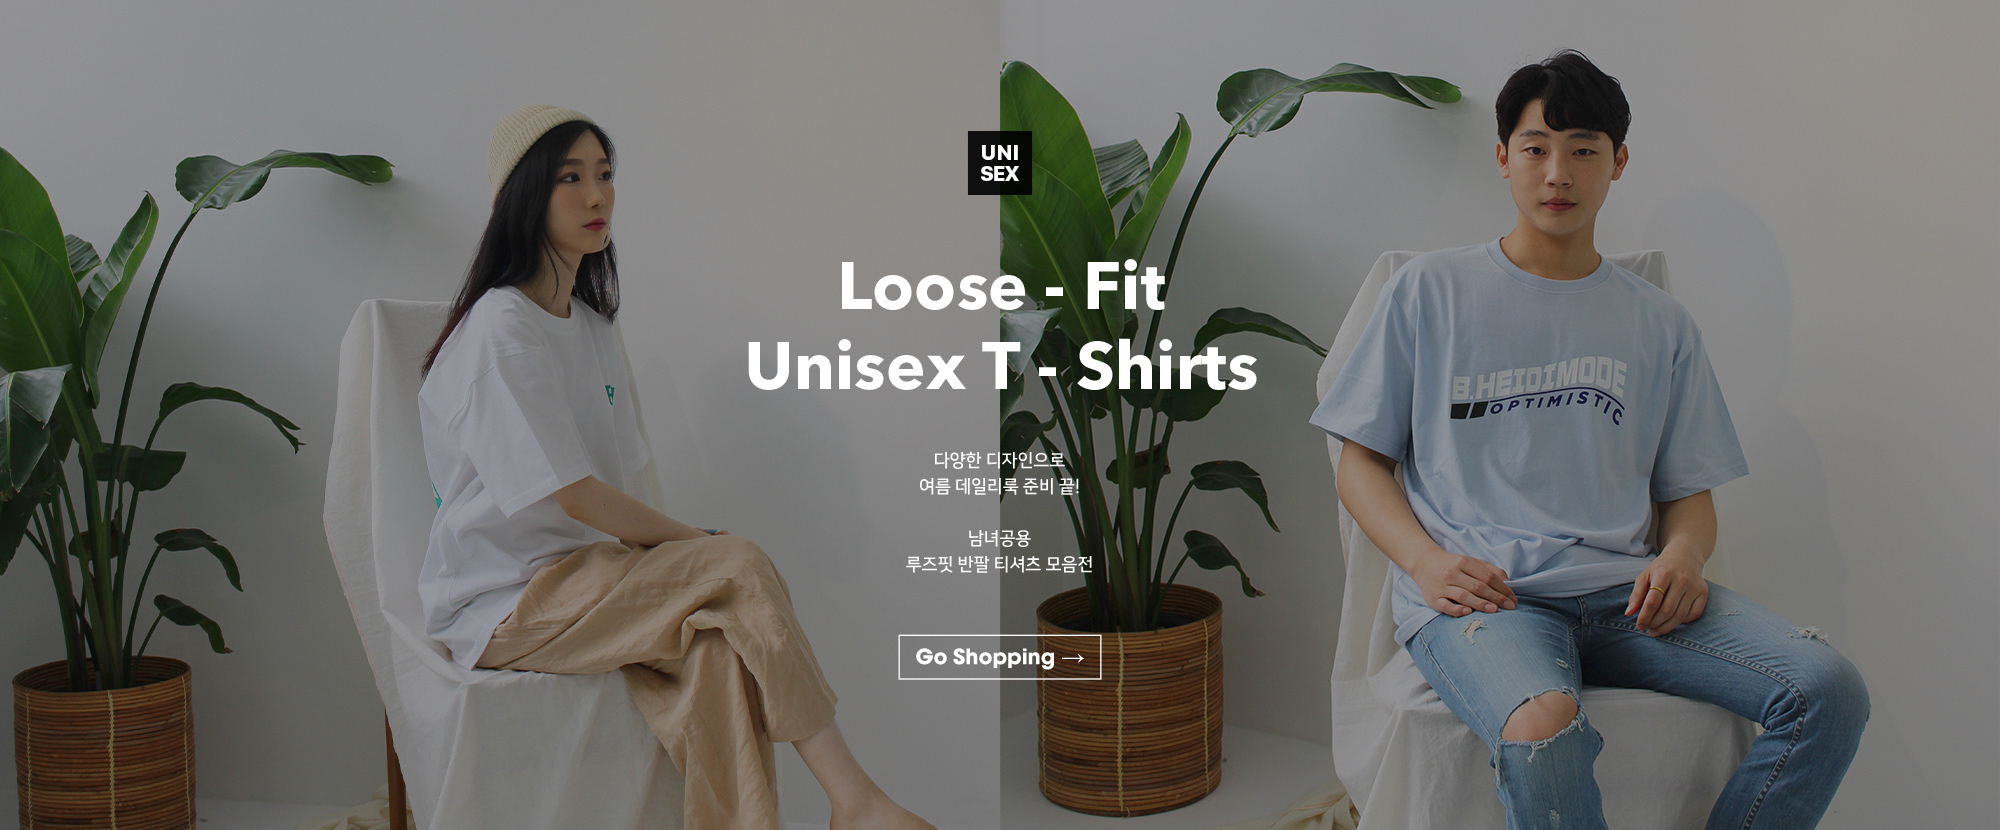 Unisex Loose-Fit T-shirts